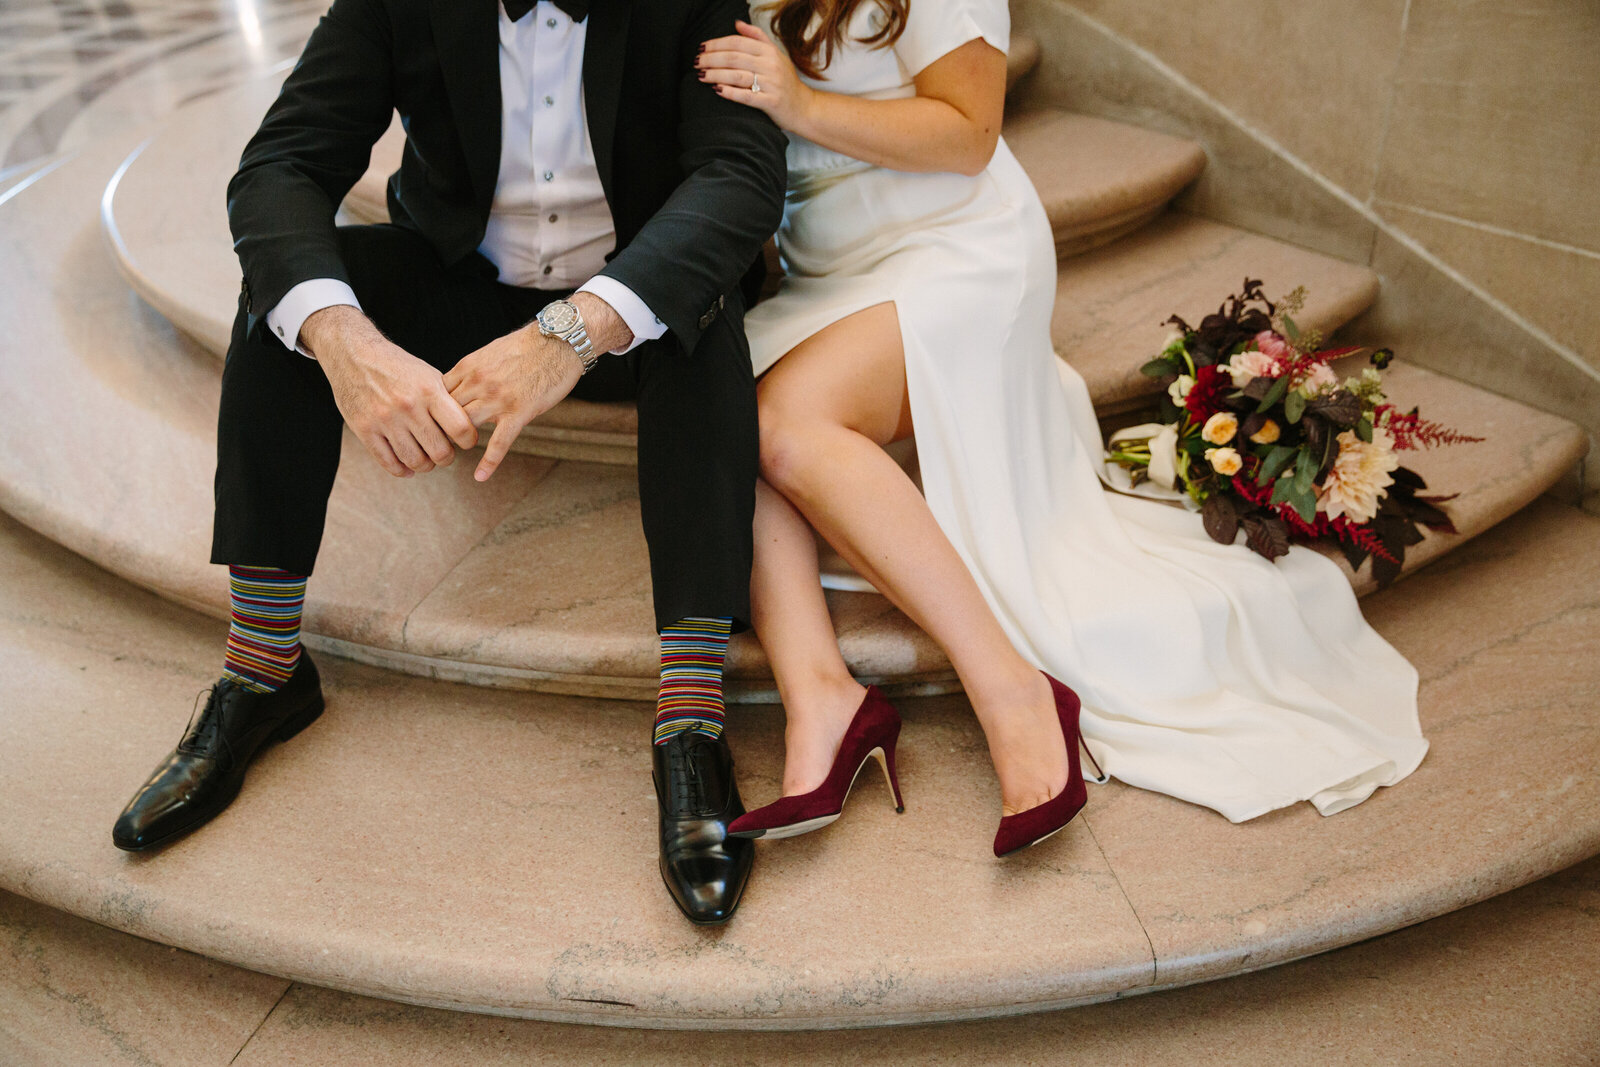 larissa-cleveland-elope-eleopement-intimate-wedding-photographer-san-francisco-napa-carmel-104